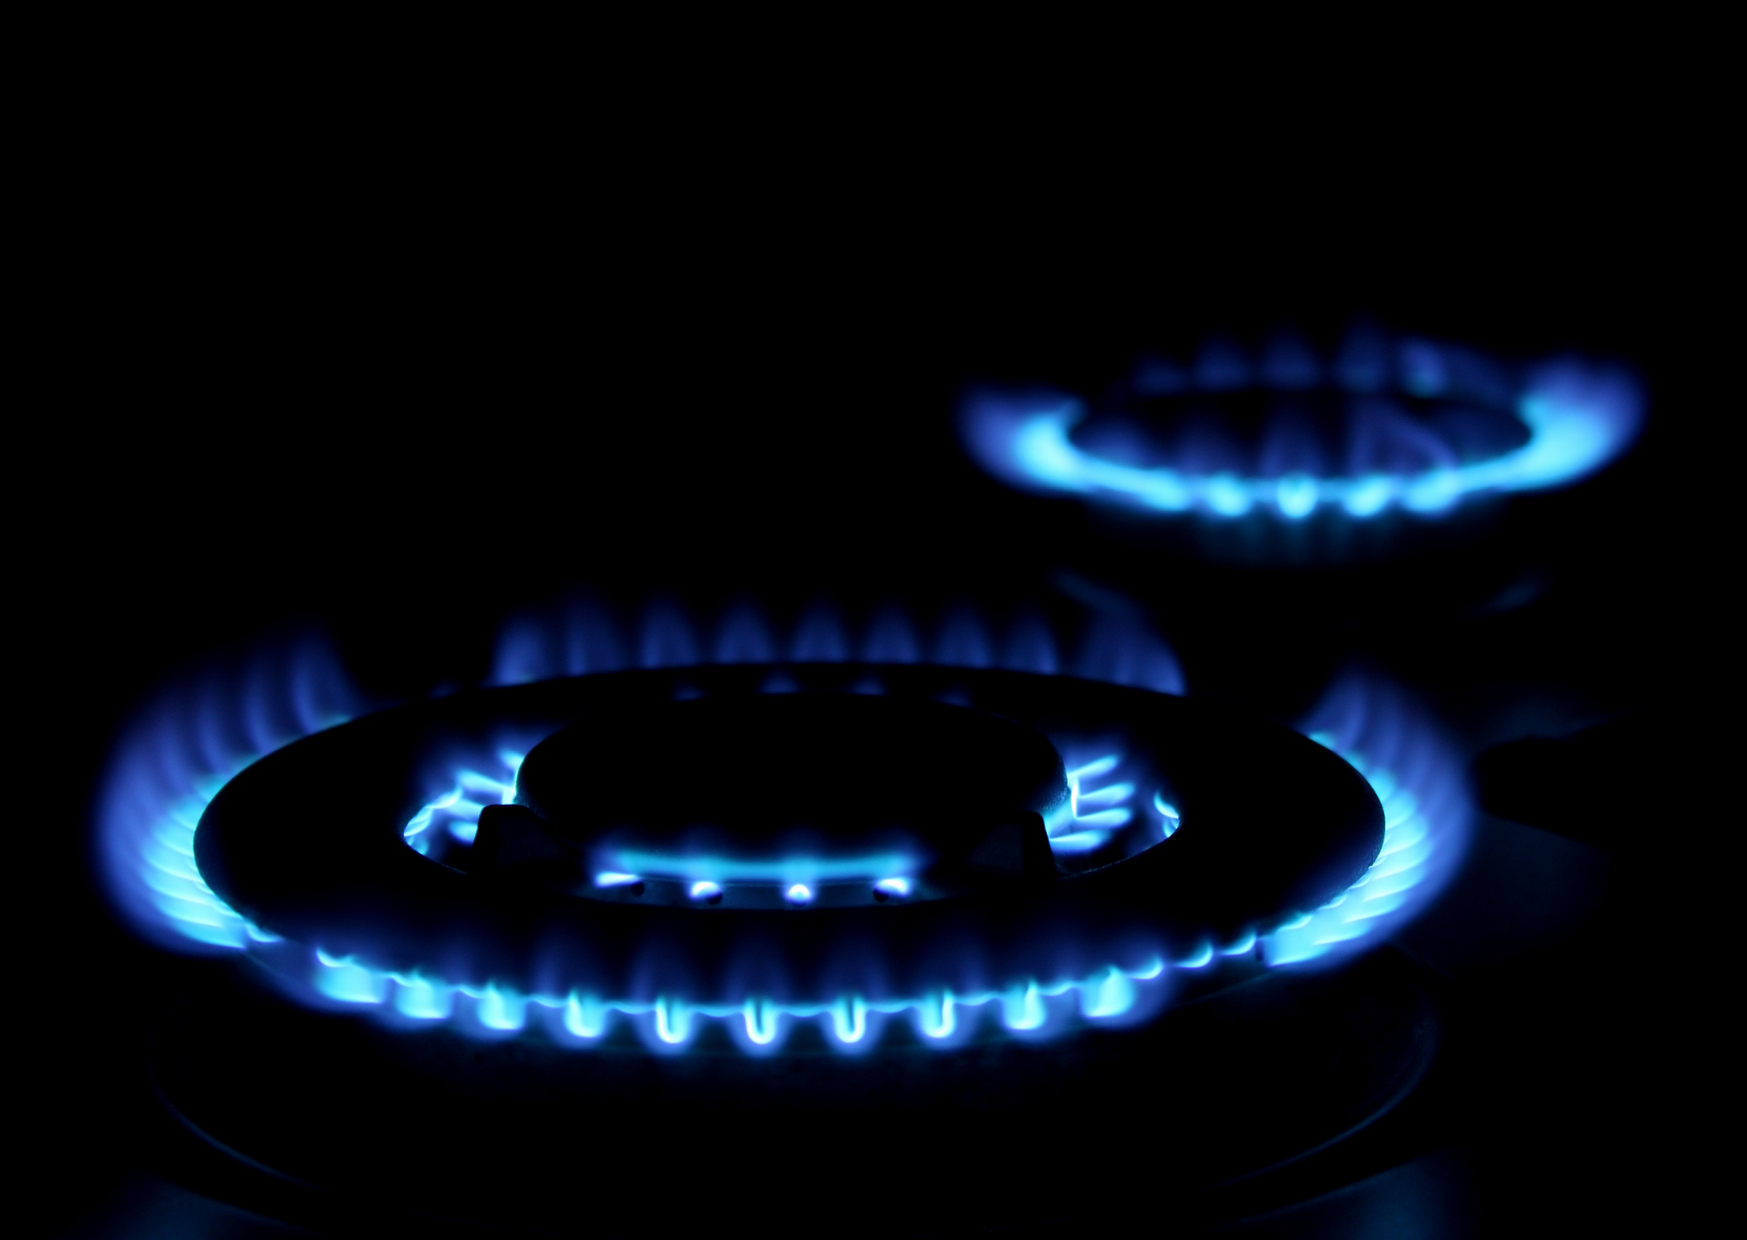 gas stove on fire